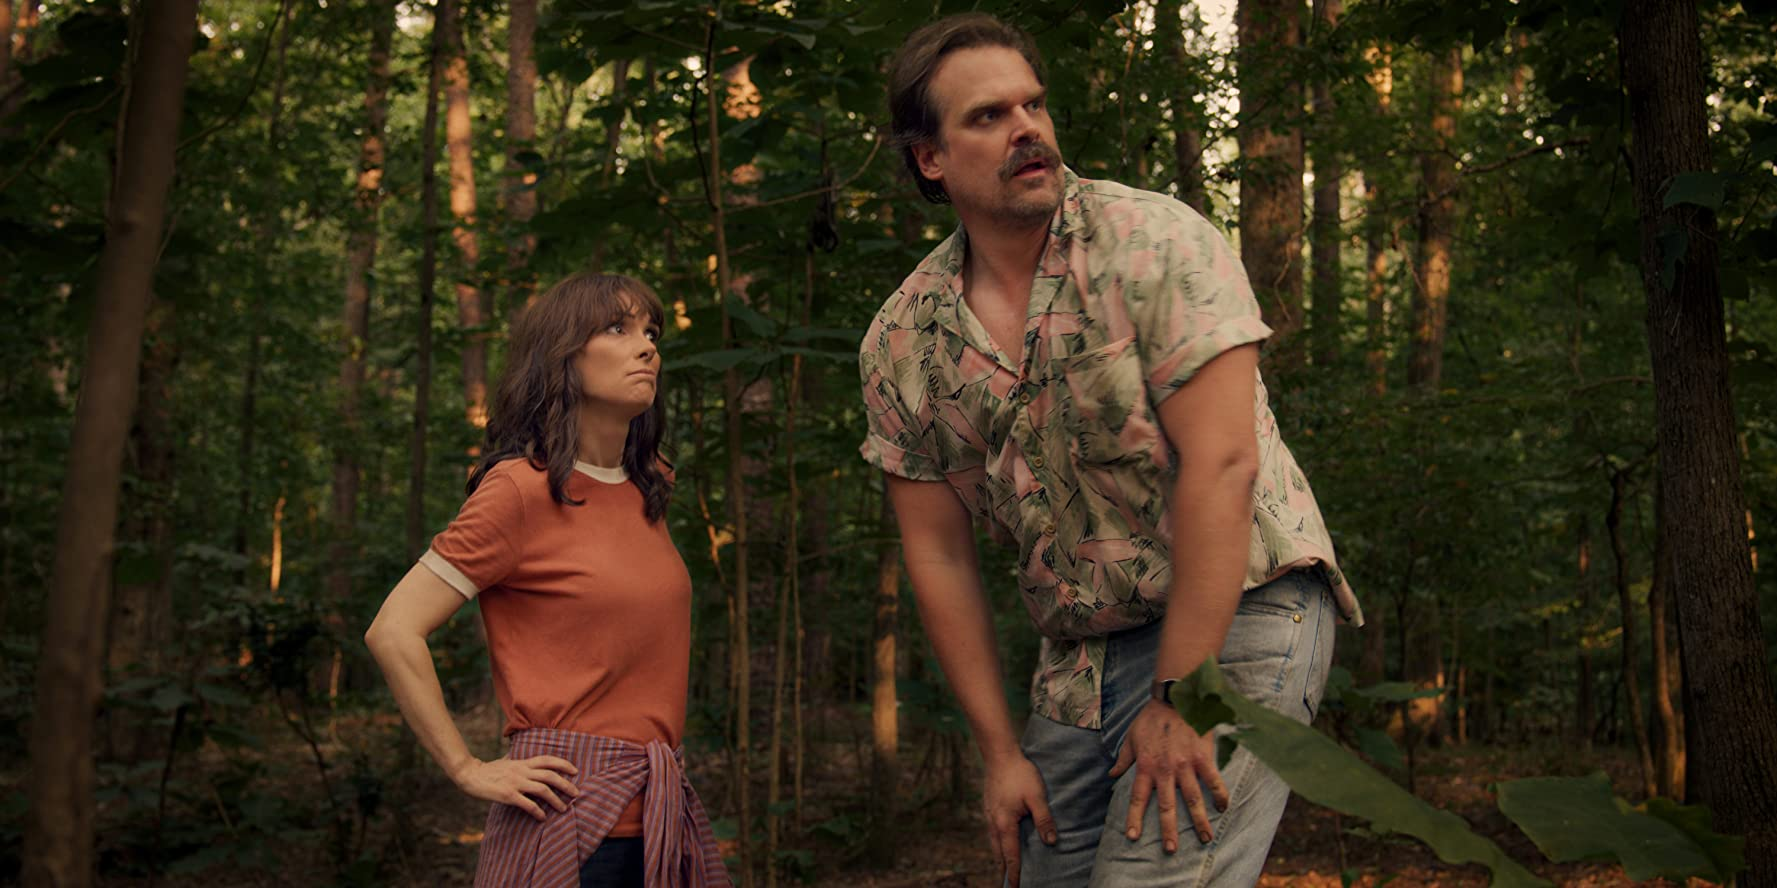 Winona Ryder and David Harbour in Stranger Things (2016)